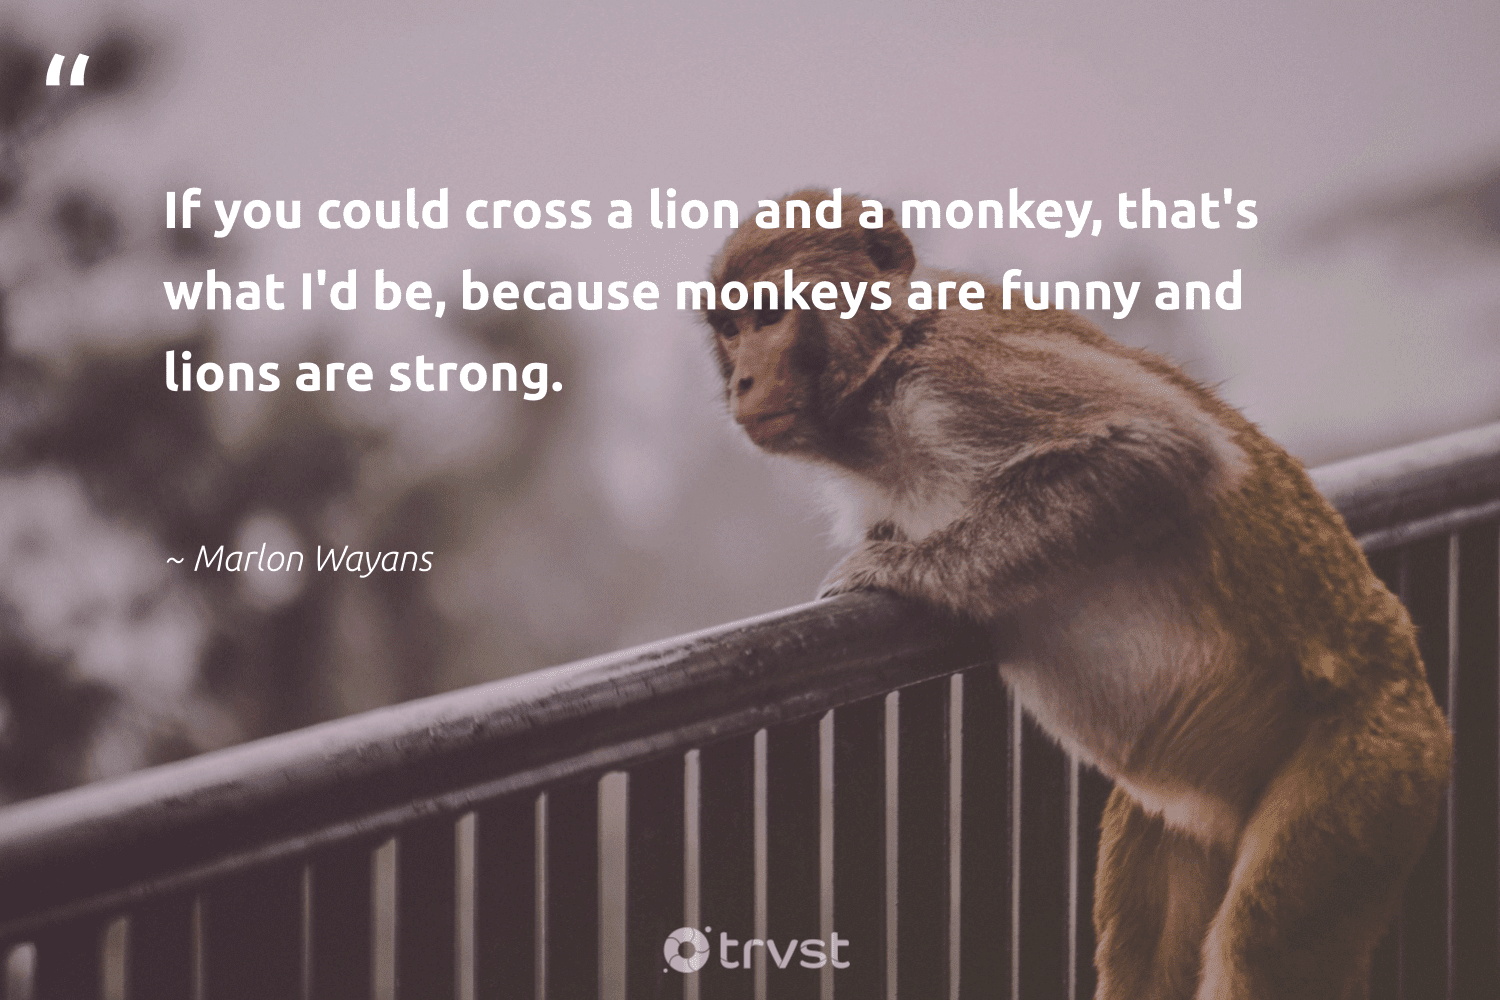 """""""If you could cross a lion and a monkey, that's what I'd be, because monkeys are funny and lions are strong.""""  - Marlon Wayans #trvst #quotes #lion #lions #monkey #monkeys #monkeylife #ecoconscious #amazingworld #dogood #conservation #planetearthfirst"""